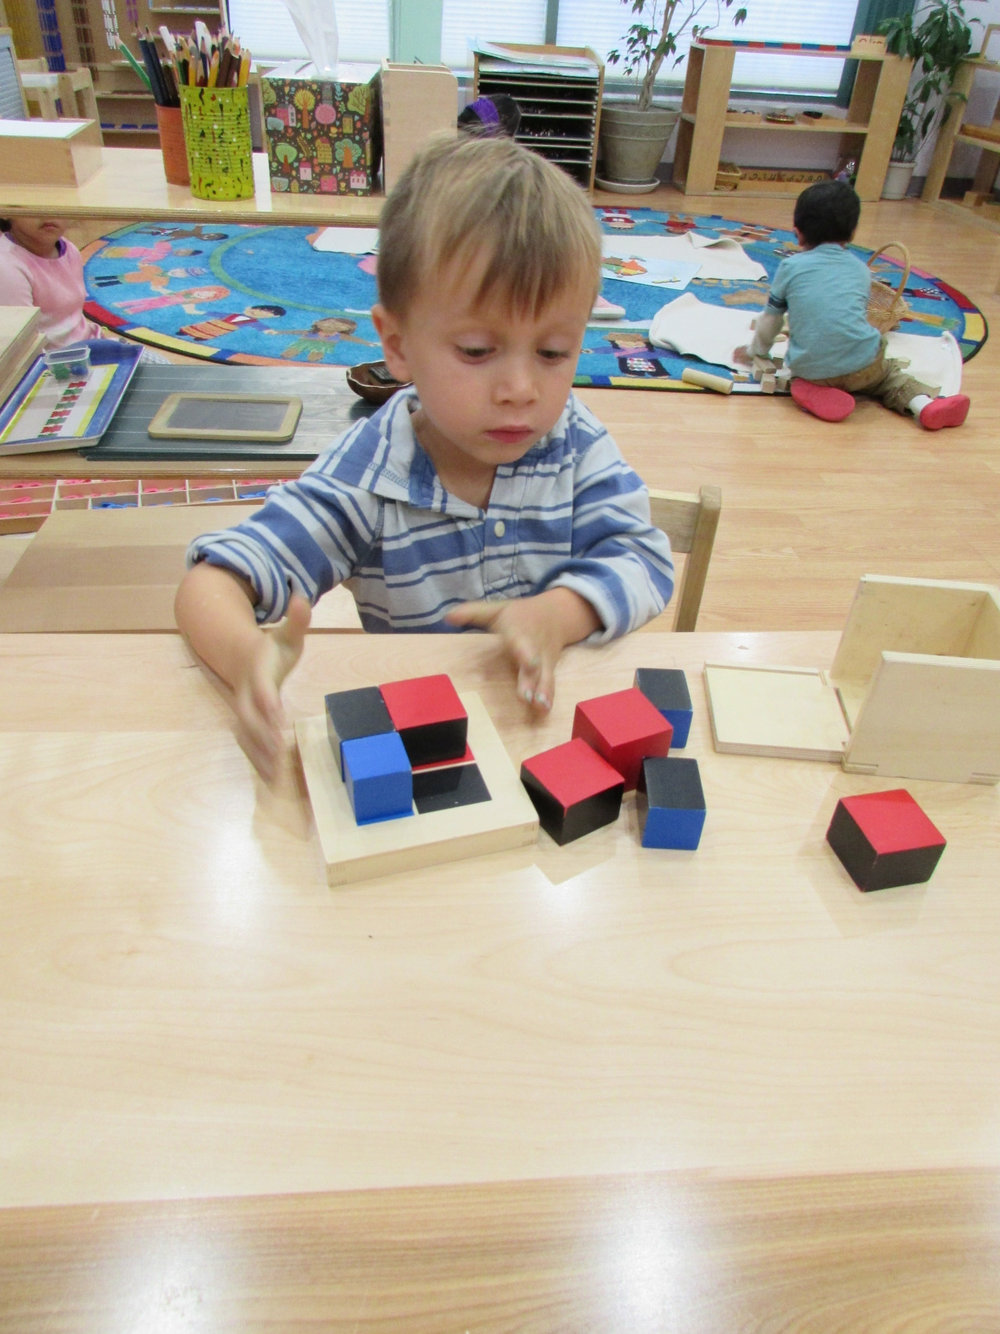 A Primary 2 student worked with the Binomial Cube, a material that promotes problem solving, helps a student to identify dimensions and prepares the student to learn algebraic concepts in the future.